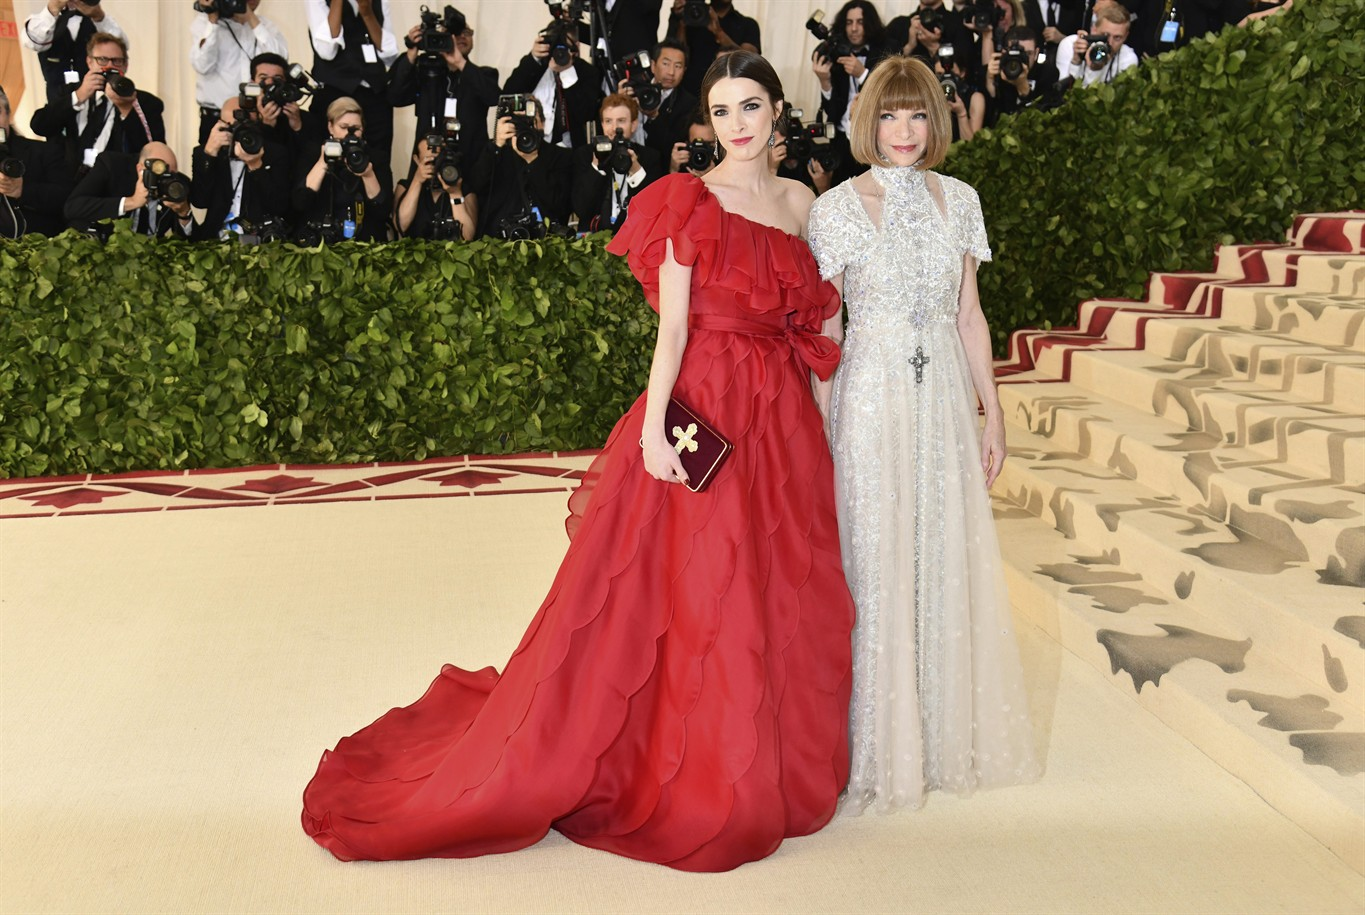 Download Met Gala 2018 Anna Wintour - NYJW105-57_2018_213813_hd  Best Photo Reference_881612.jpg